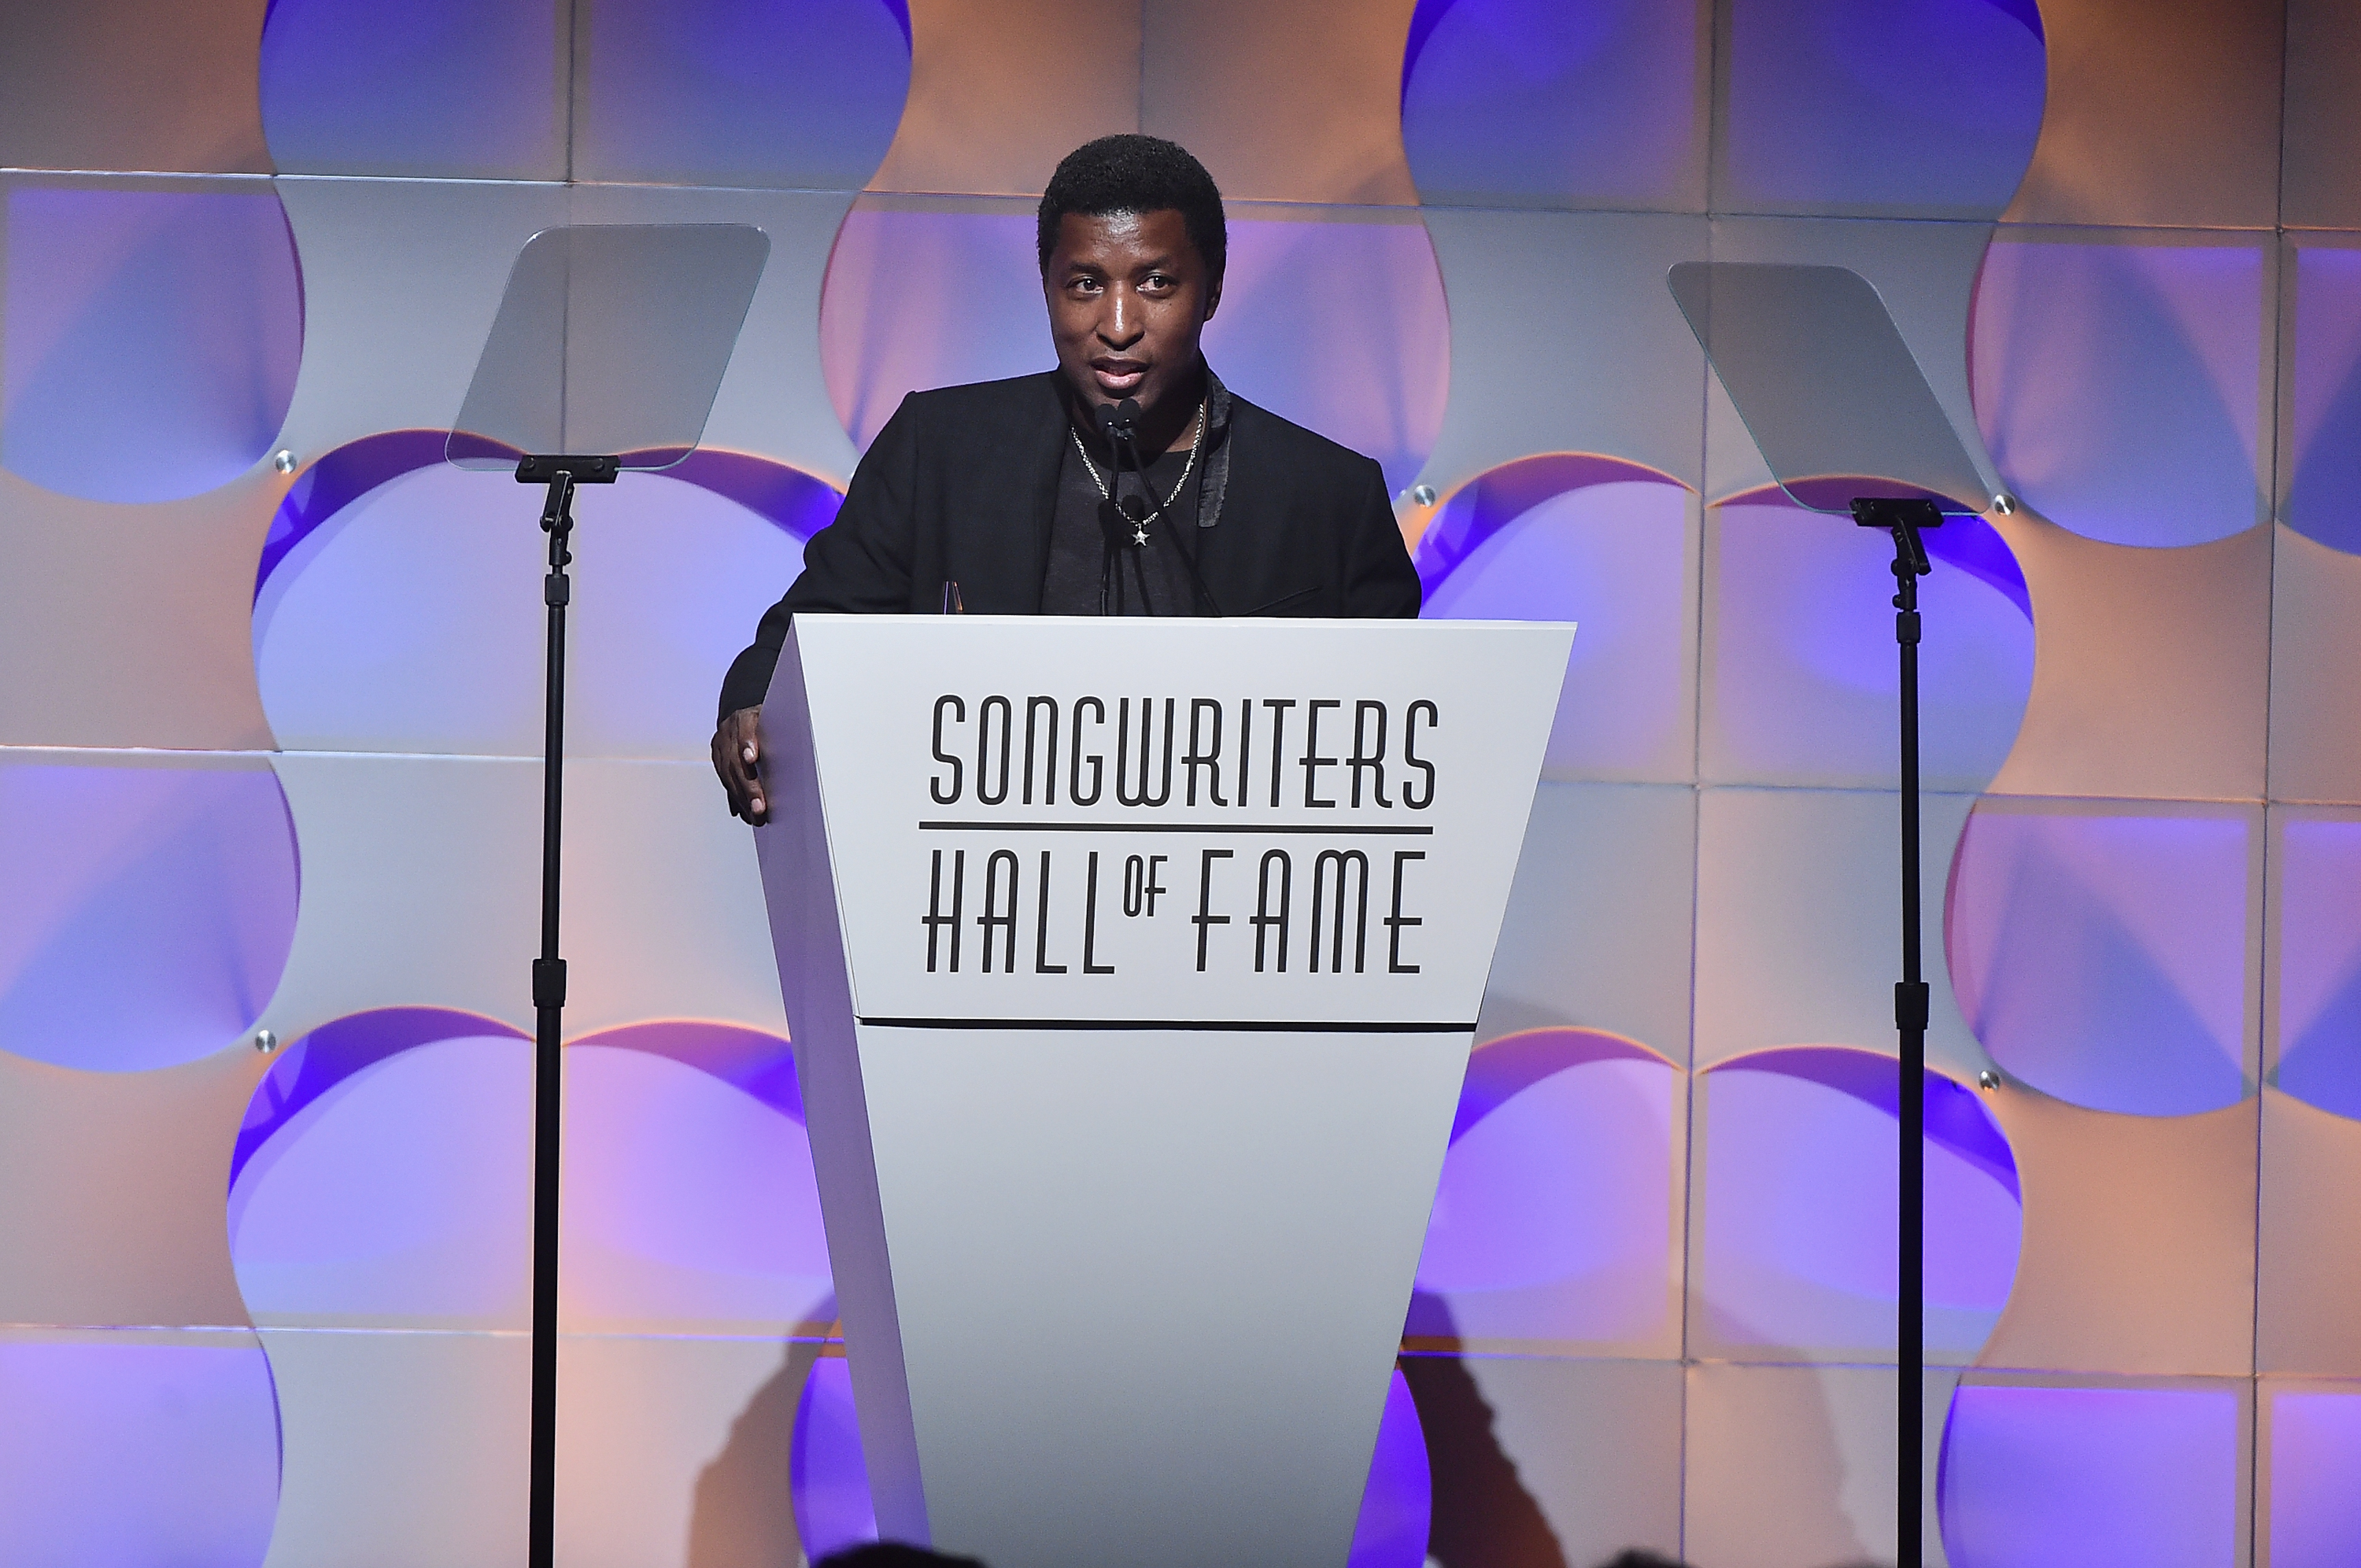 NEW YORK, NY - JUNE 15:  2017 Inductee Kenneth Babyface Edmonds accepts his award onstage at the Songwriters Hall Of Fame 48th Annual Induction and Awards at New York Marriott Marquis Hotel on June 15, 2017 in New York City.  (Photo by Theo Wargo/Getty Images for Songwriters Hall Of Fame) *** Local Caption *** Babyface Edmonds